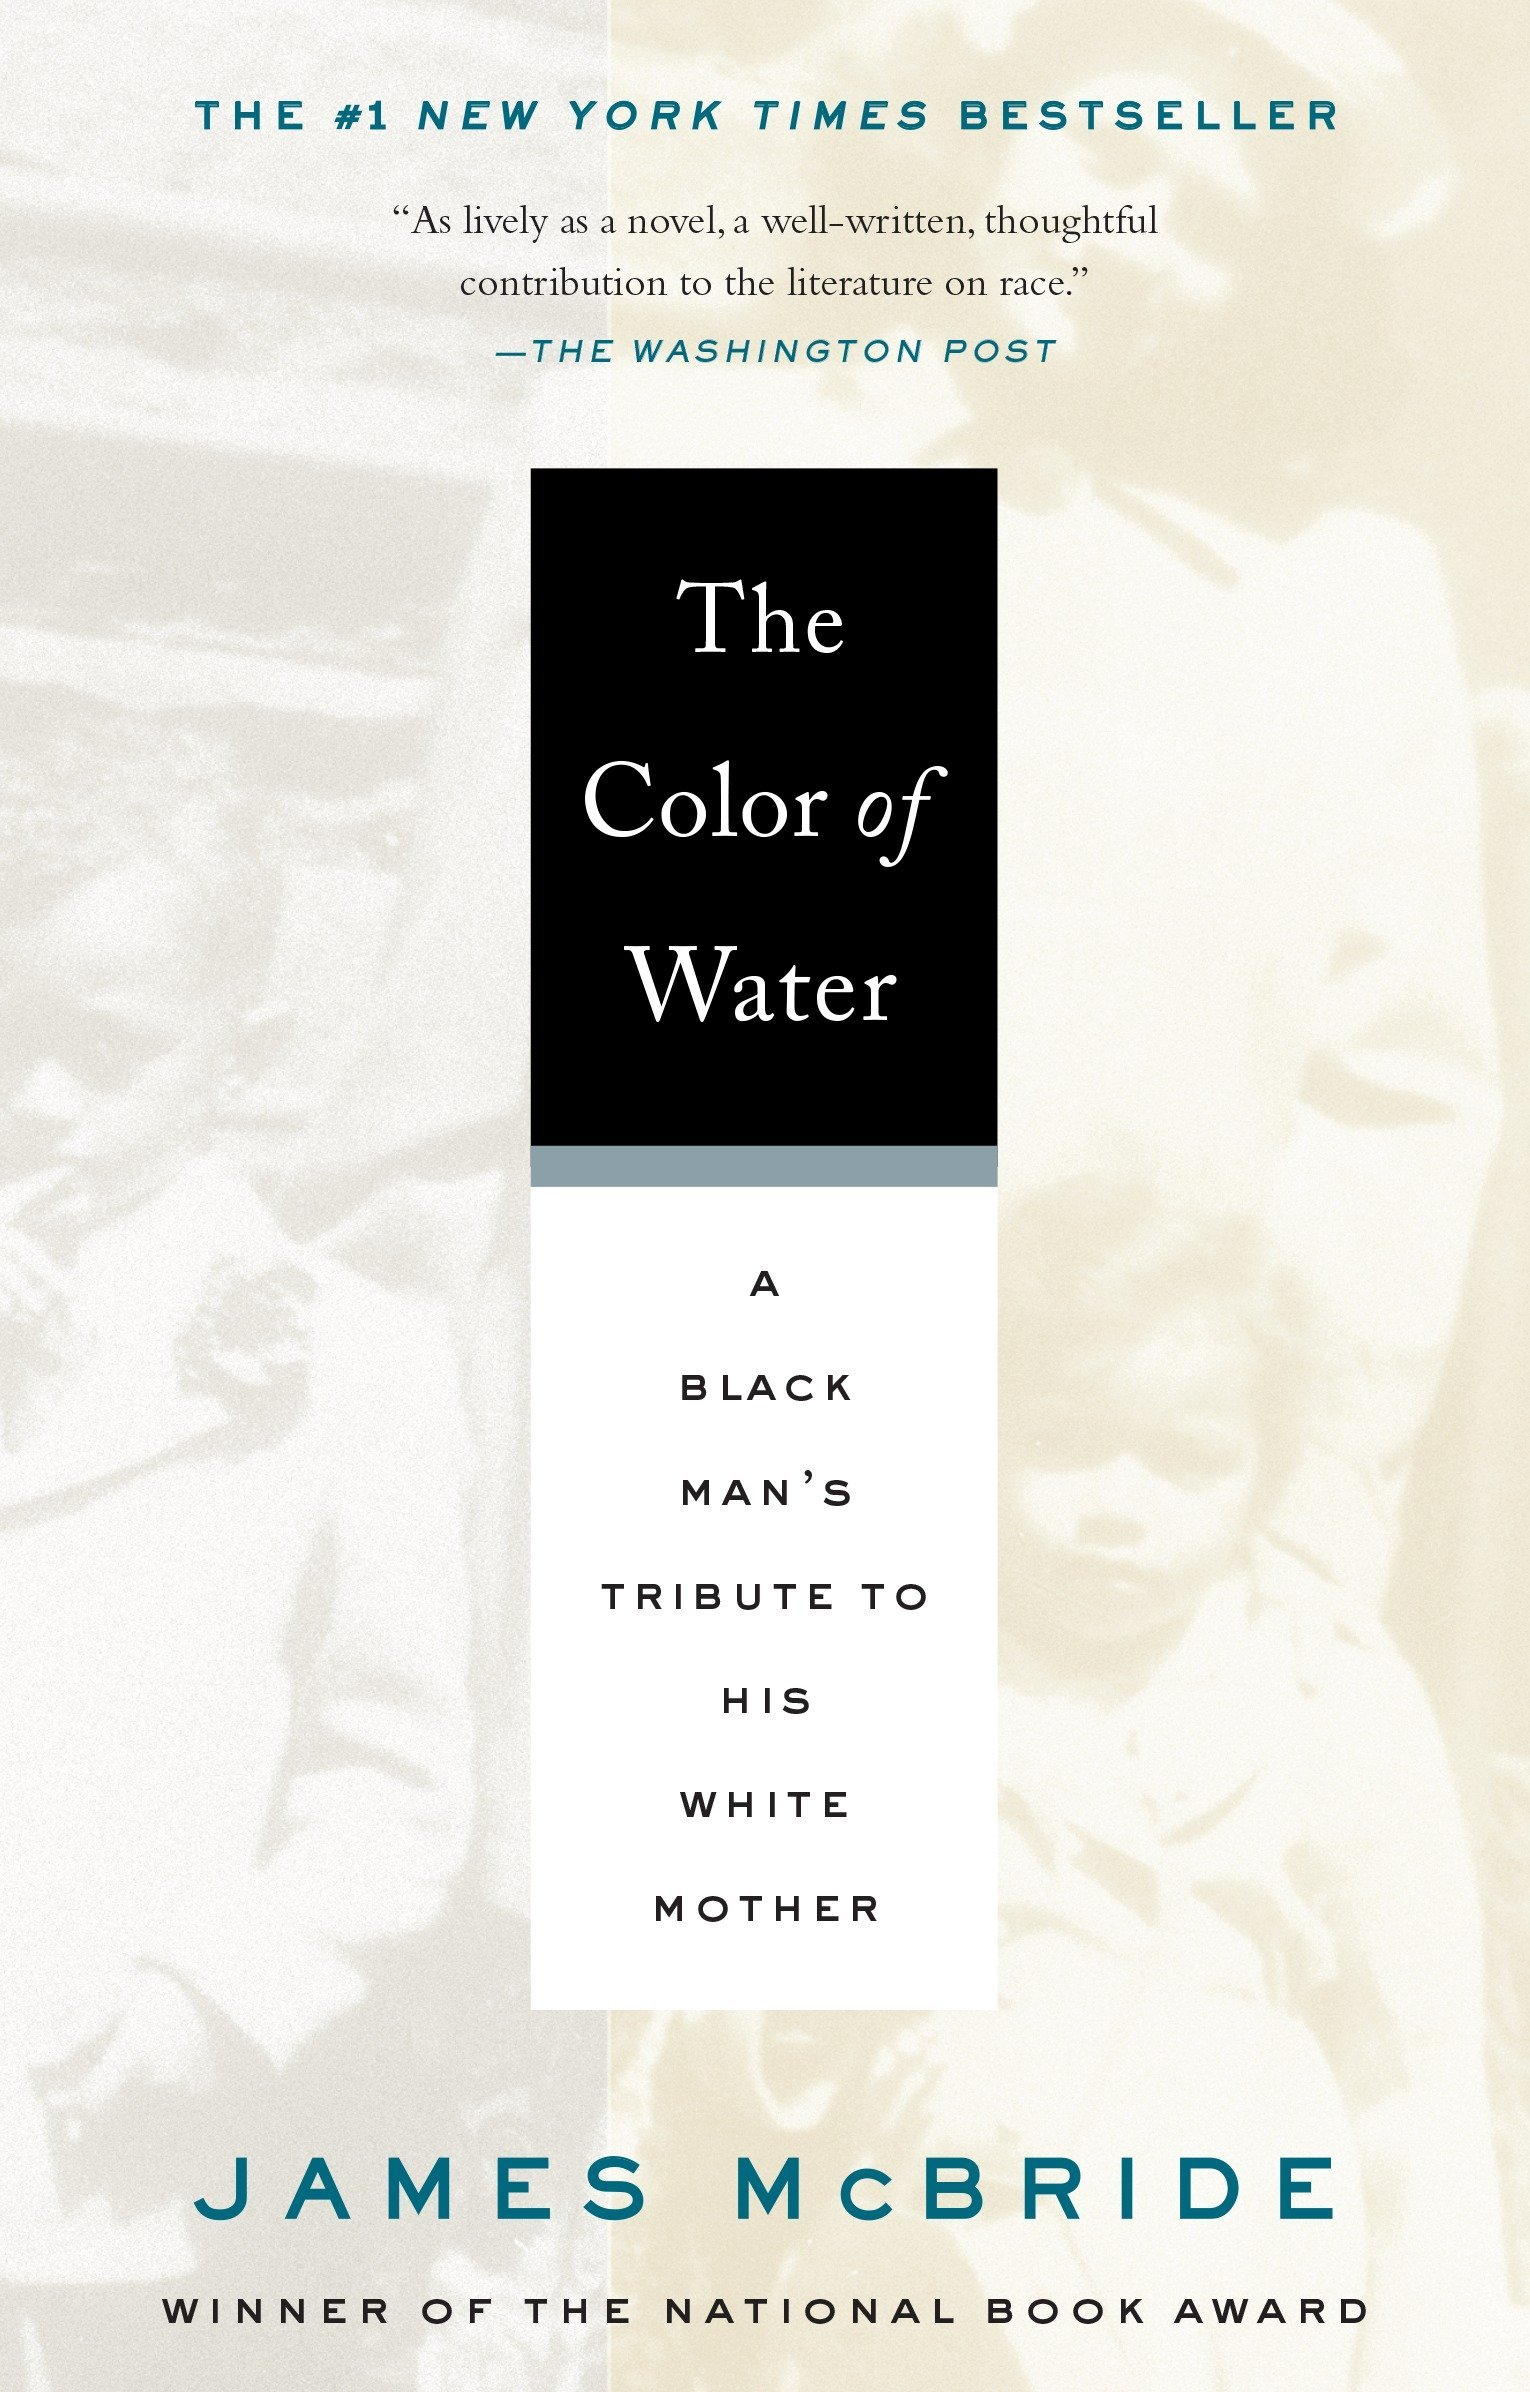 The Color of Water | TBR etc.